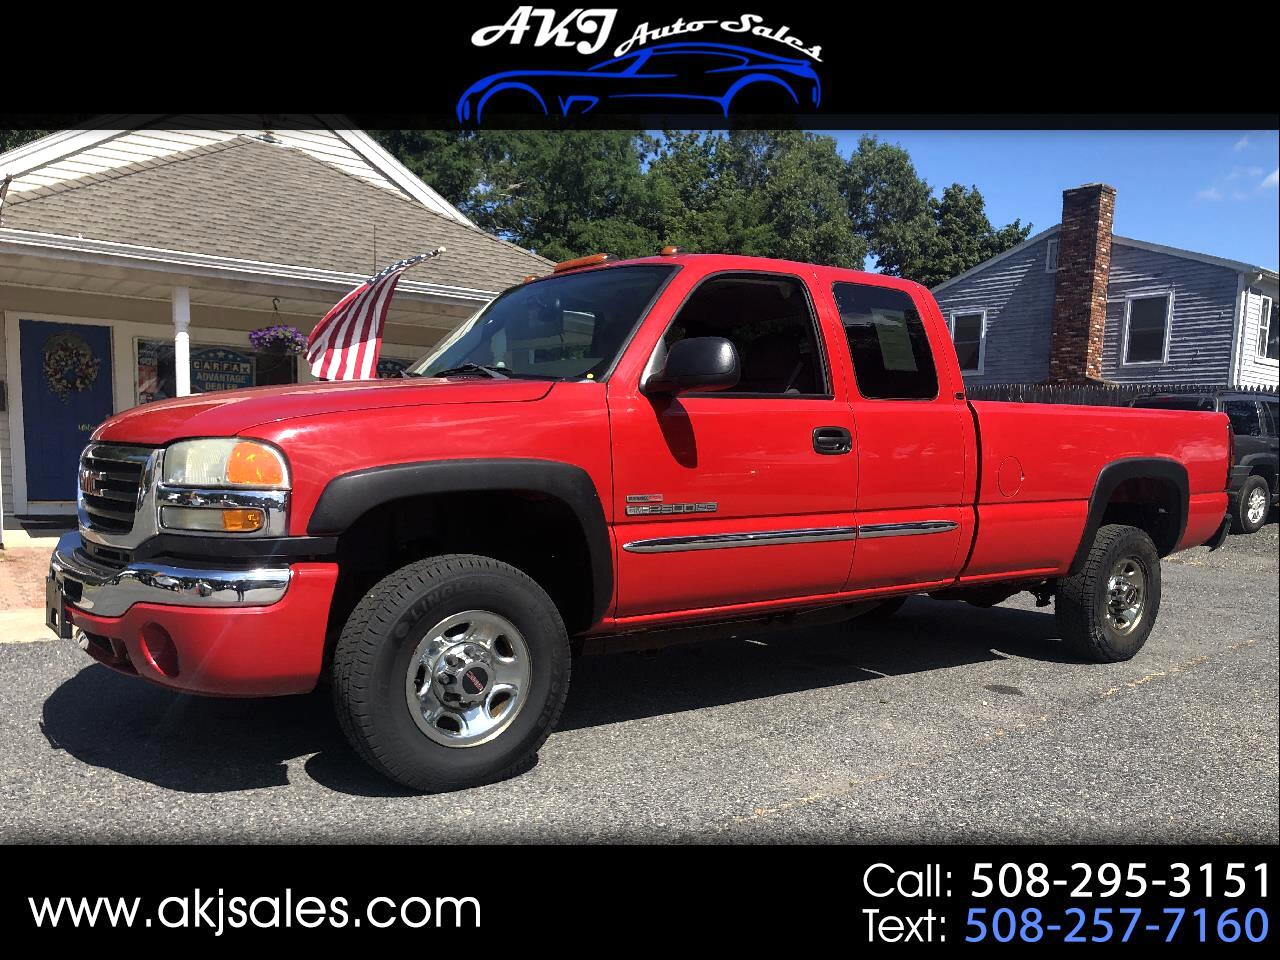 2004 GMC Sierra 2500HD Ext. Ext. Cab Long Bed 2WD